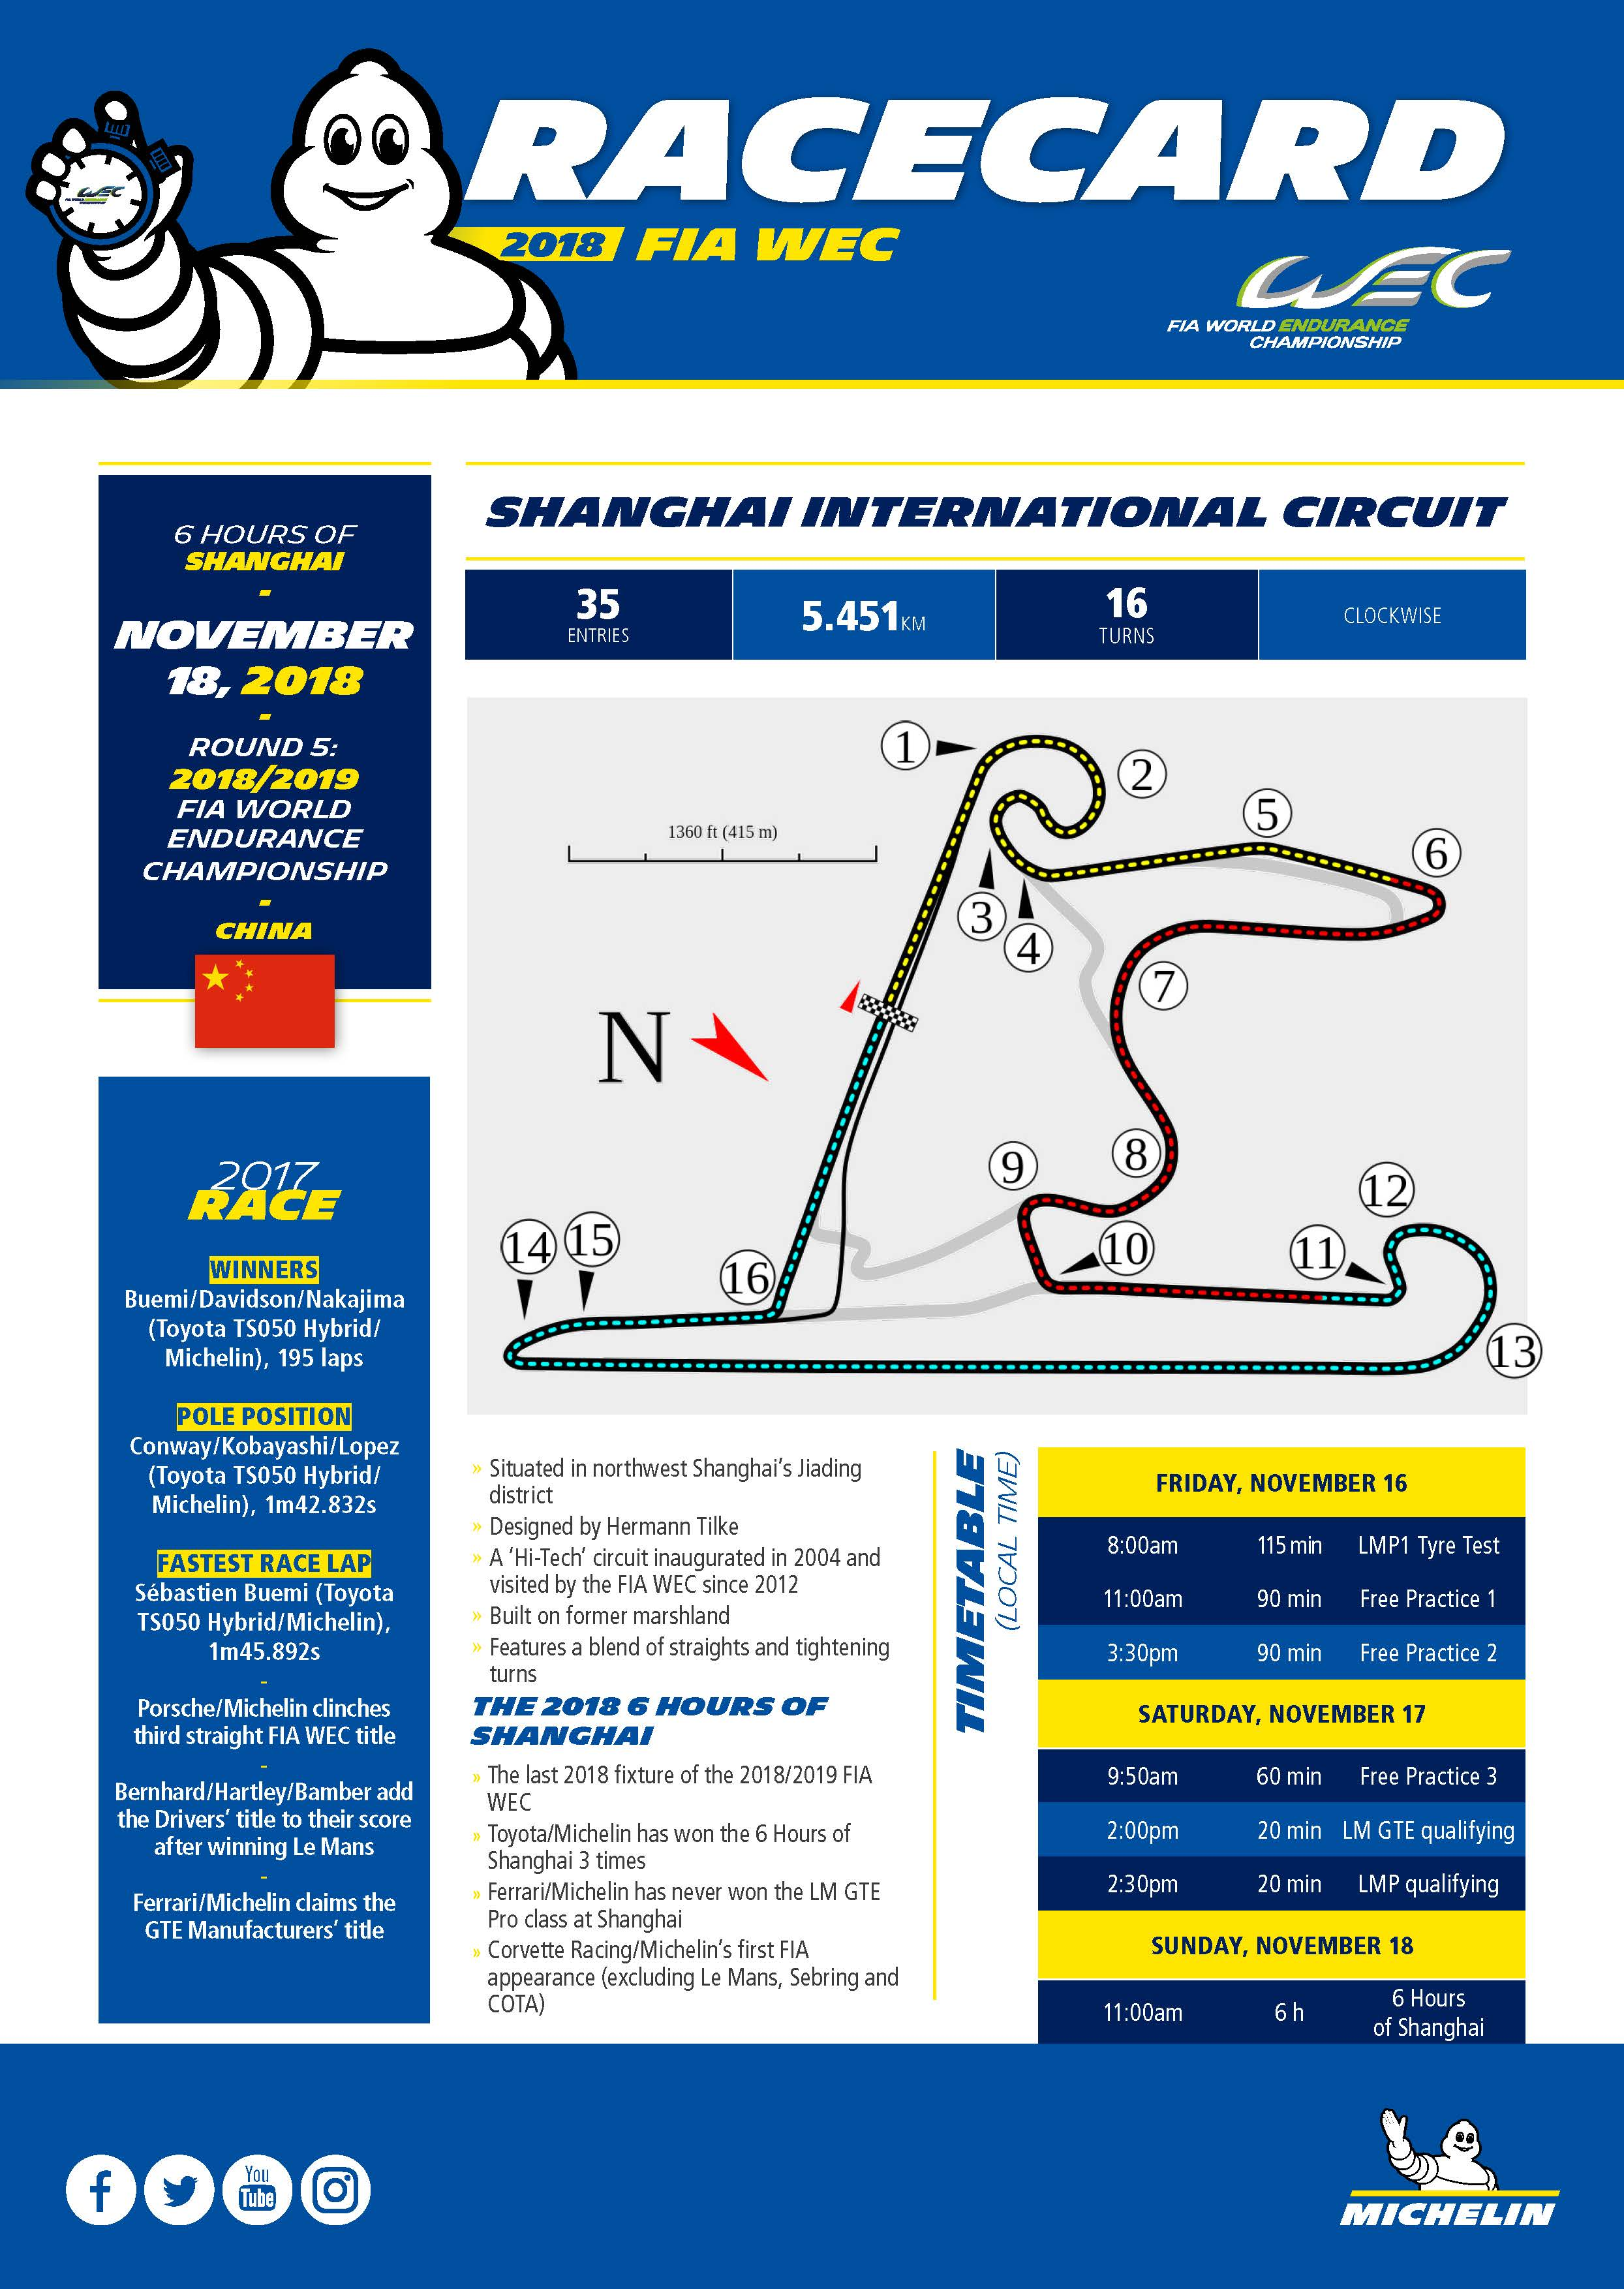 Michelin_Racecard_WEC_Shanghai_2018_UK_Page_1